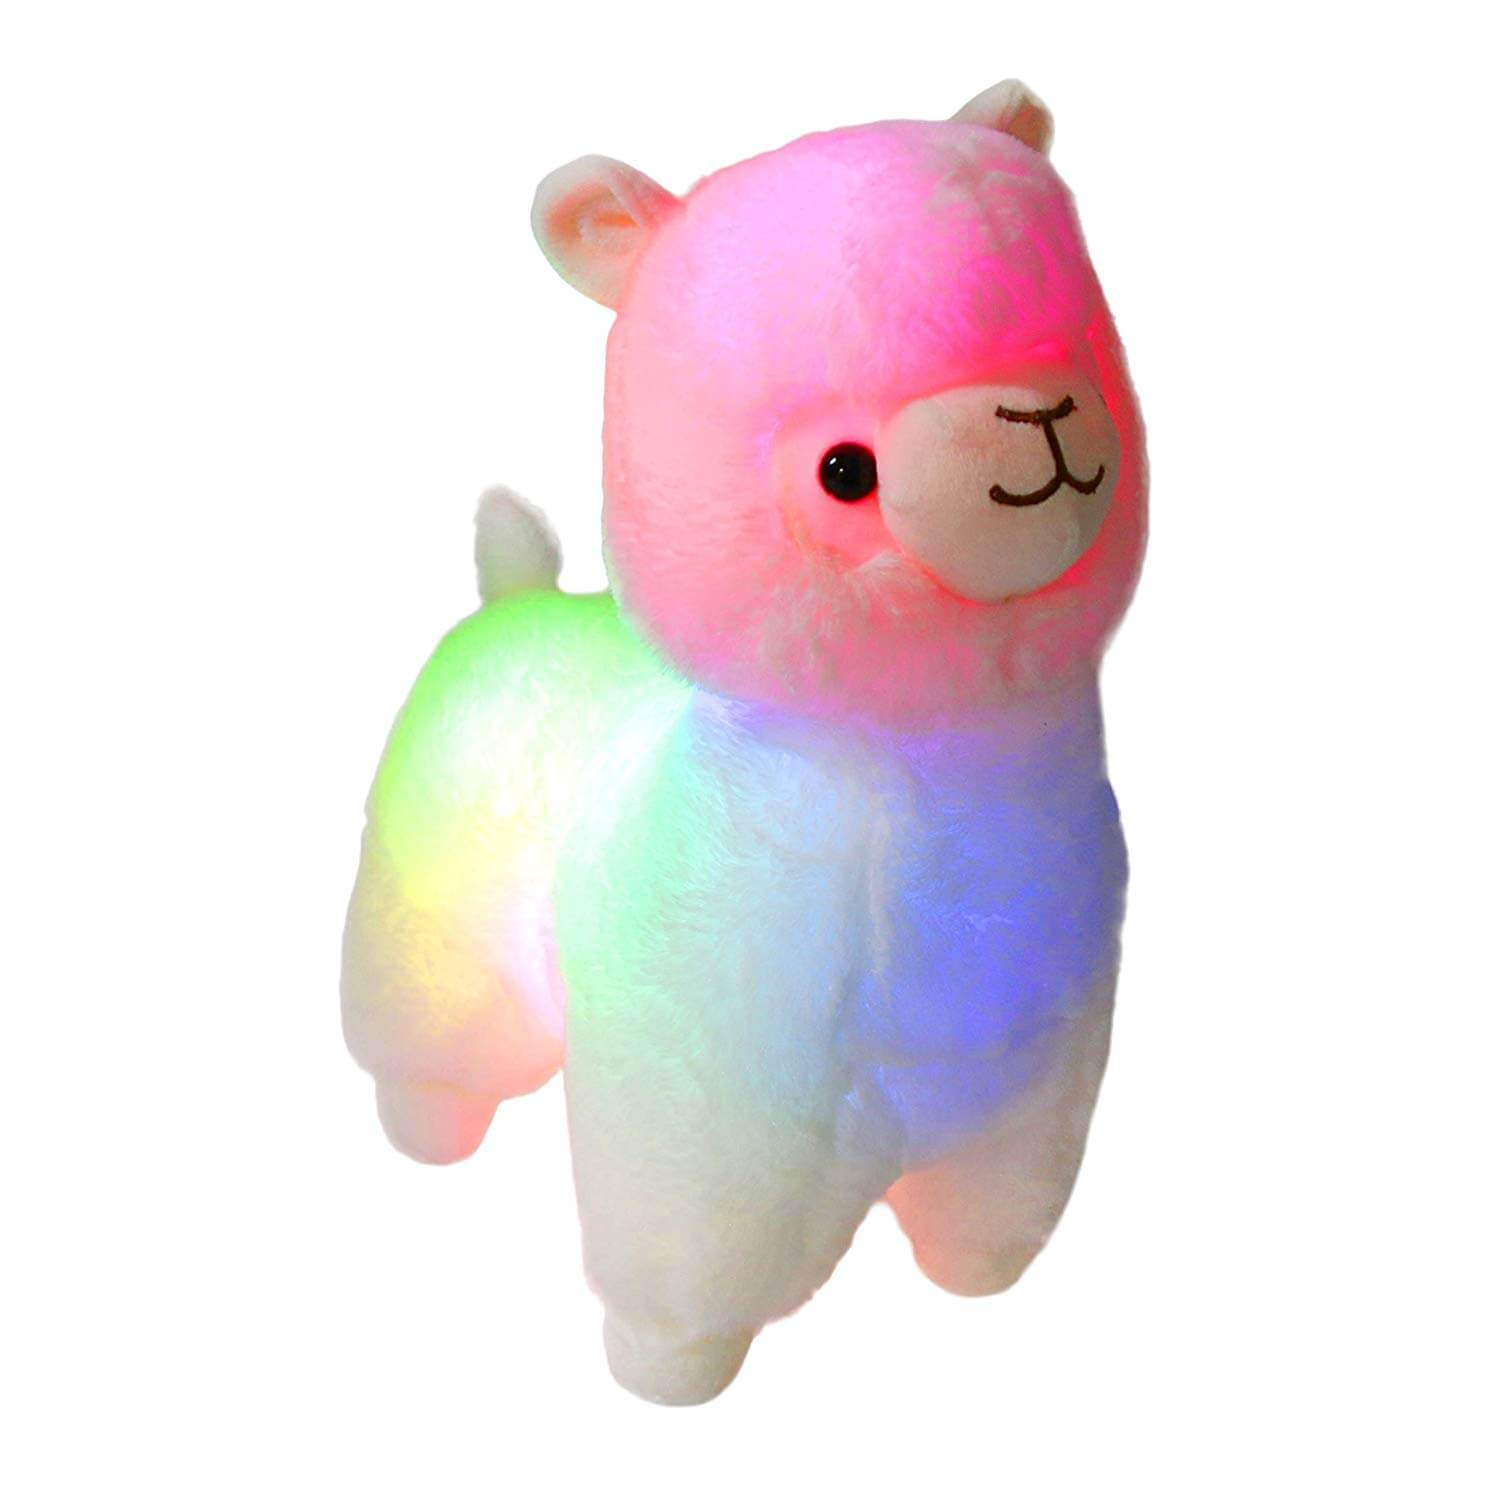 night light up llama rainbow soft toy, 14 inch | Bstaofy - Glow Guards